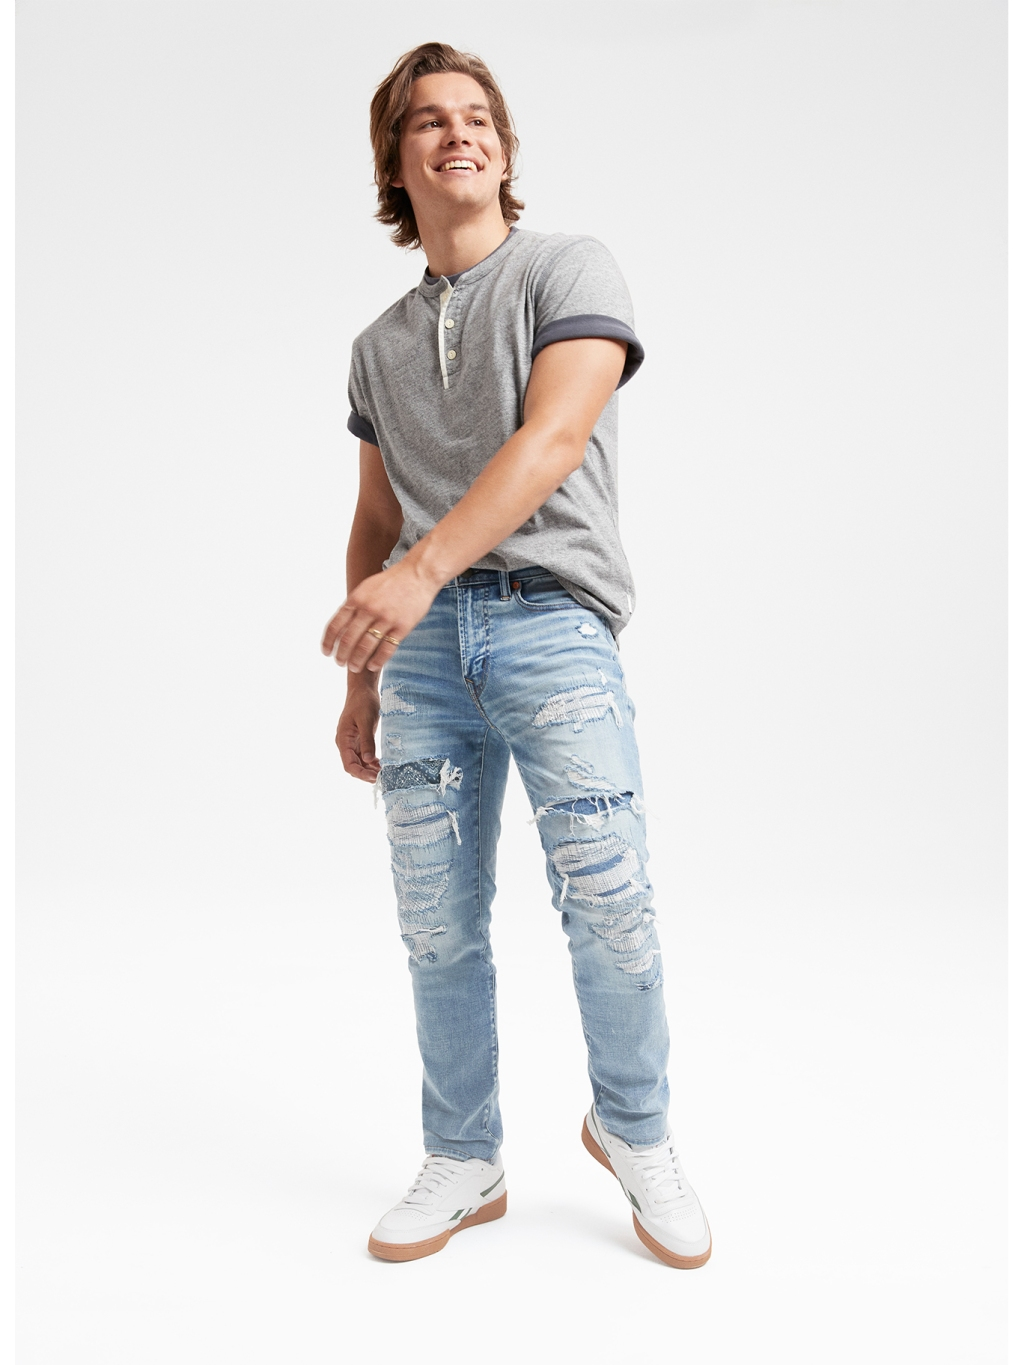 guy wearing a gray tshirt and light wash slim jeans